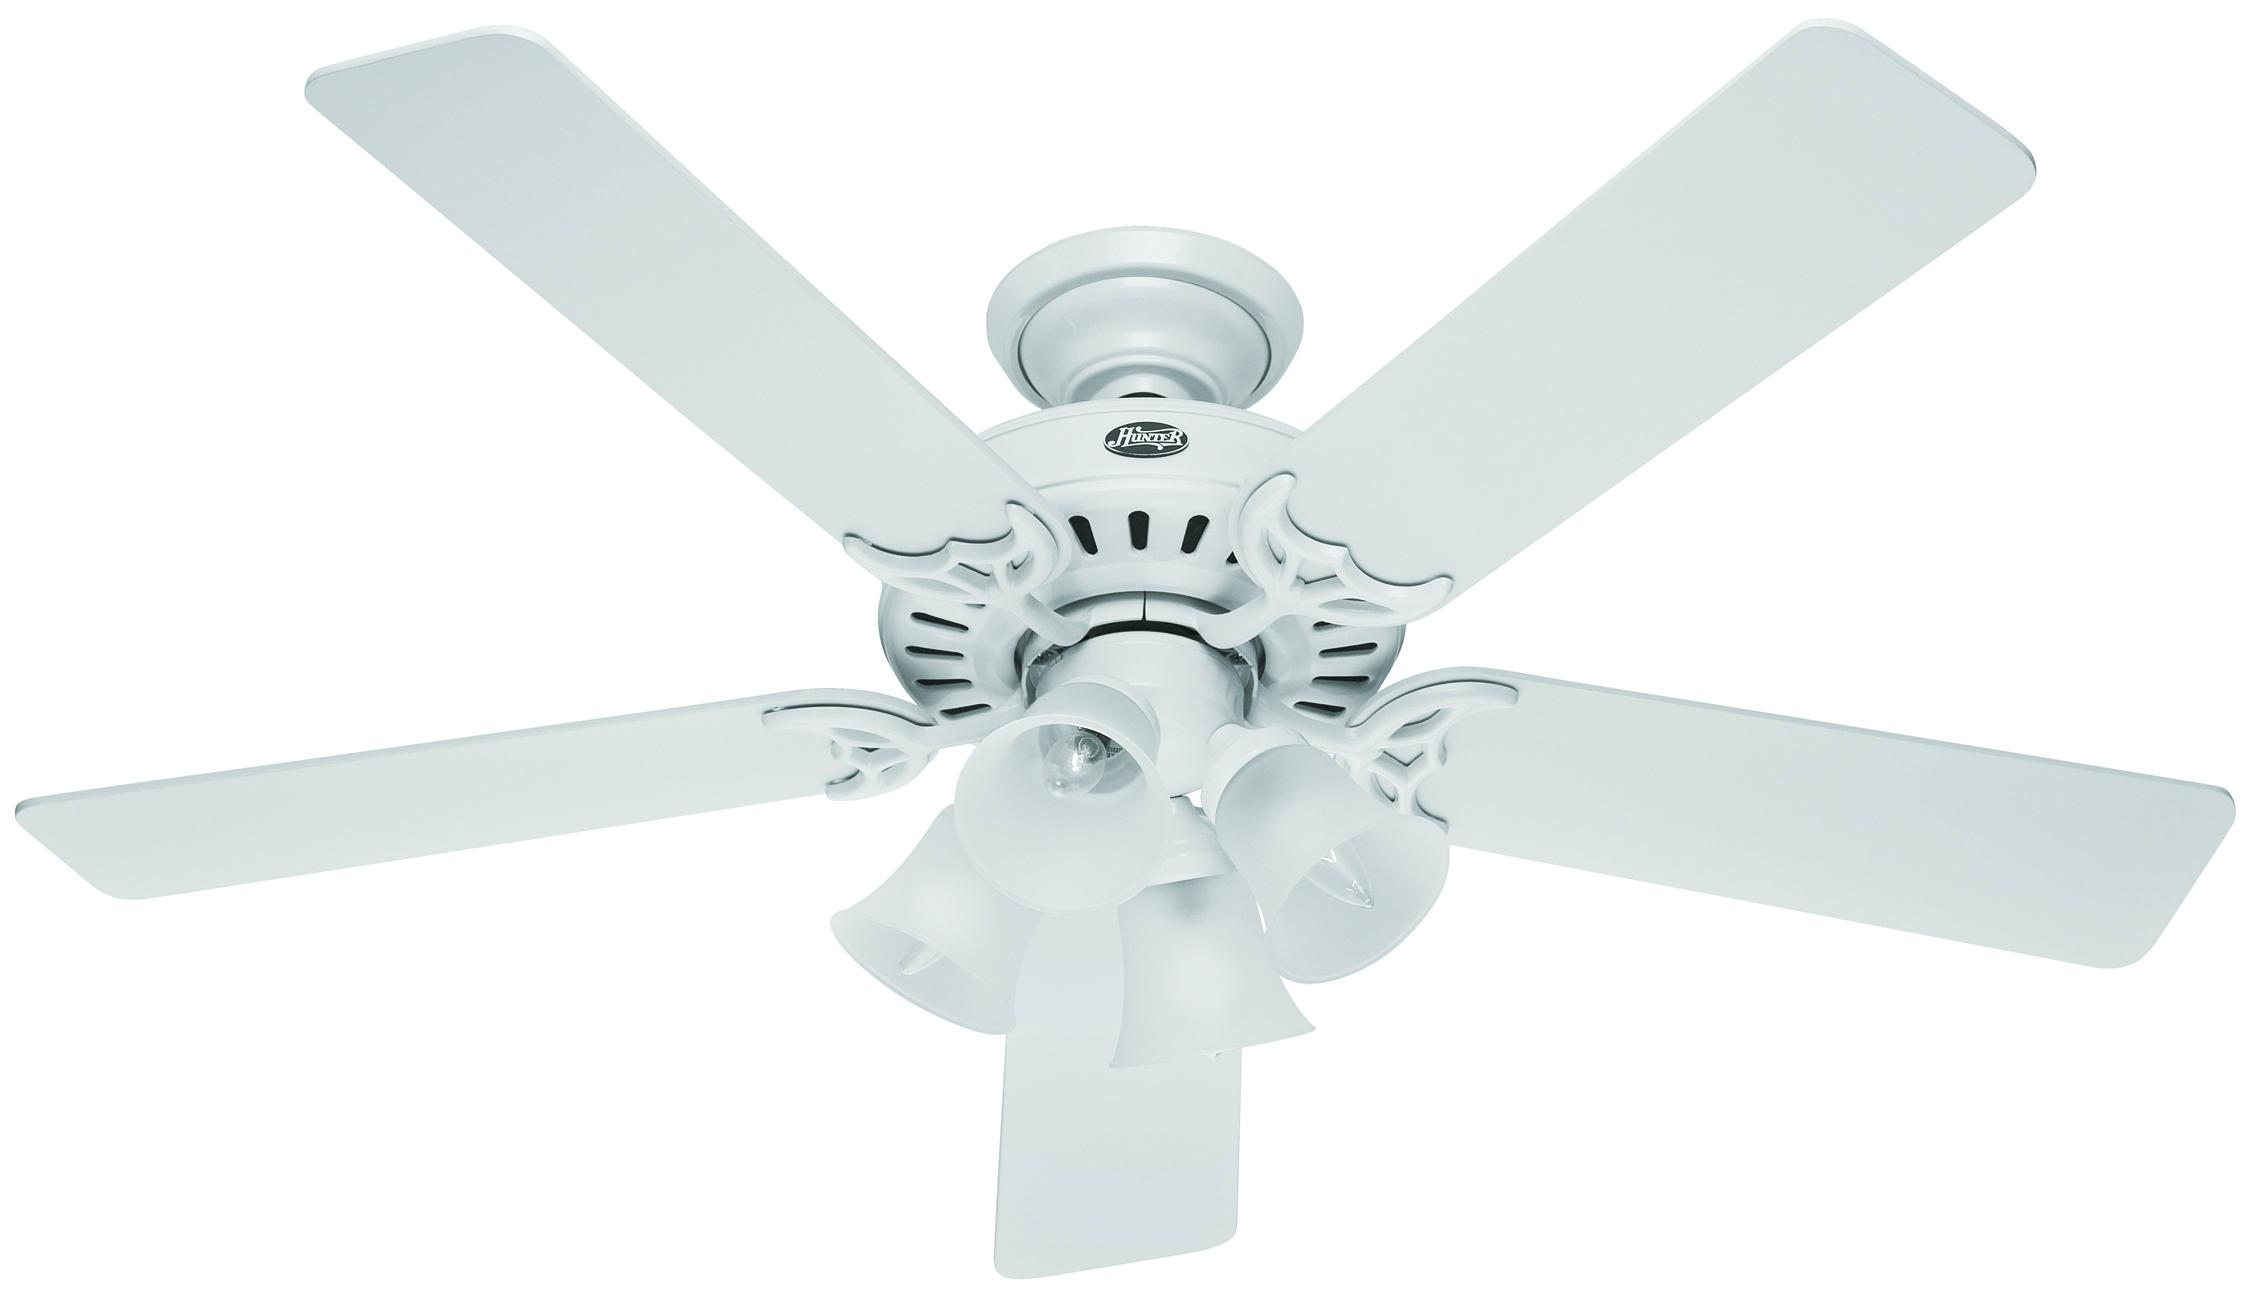 studio white ceiling fan hunter ceiling fans - studio white ceiling fan